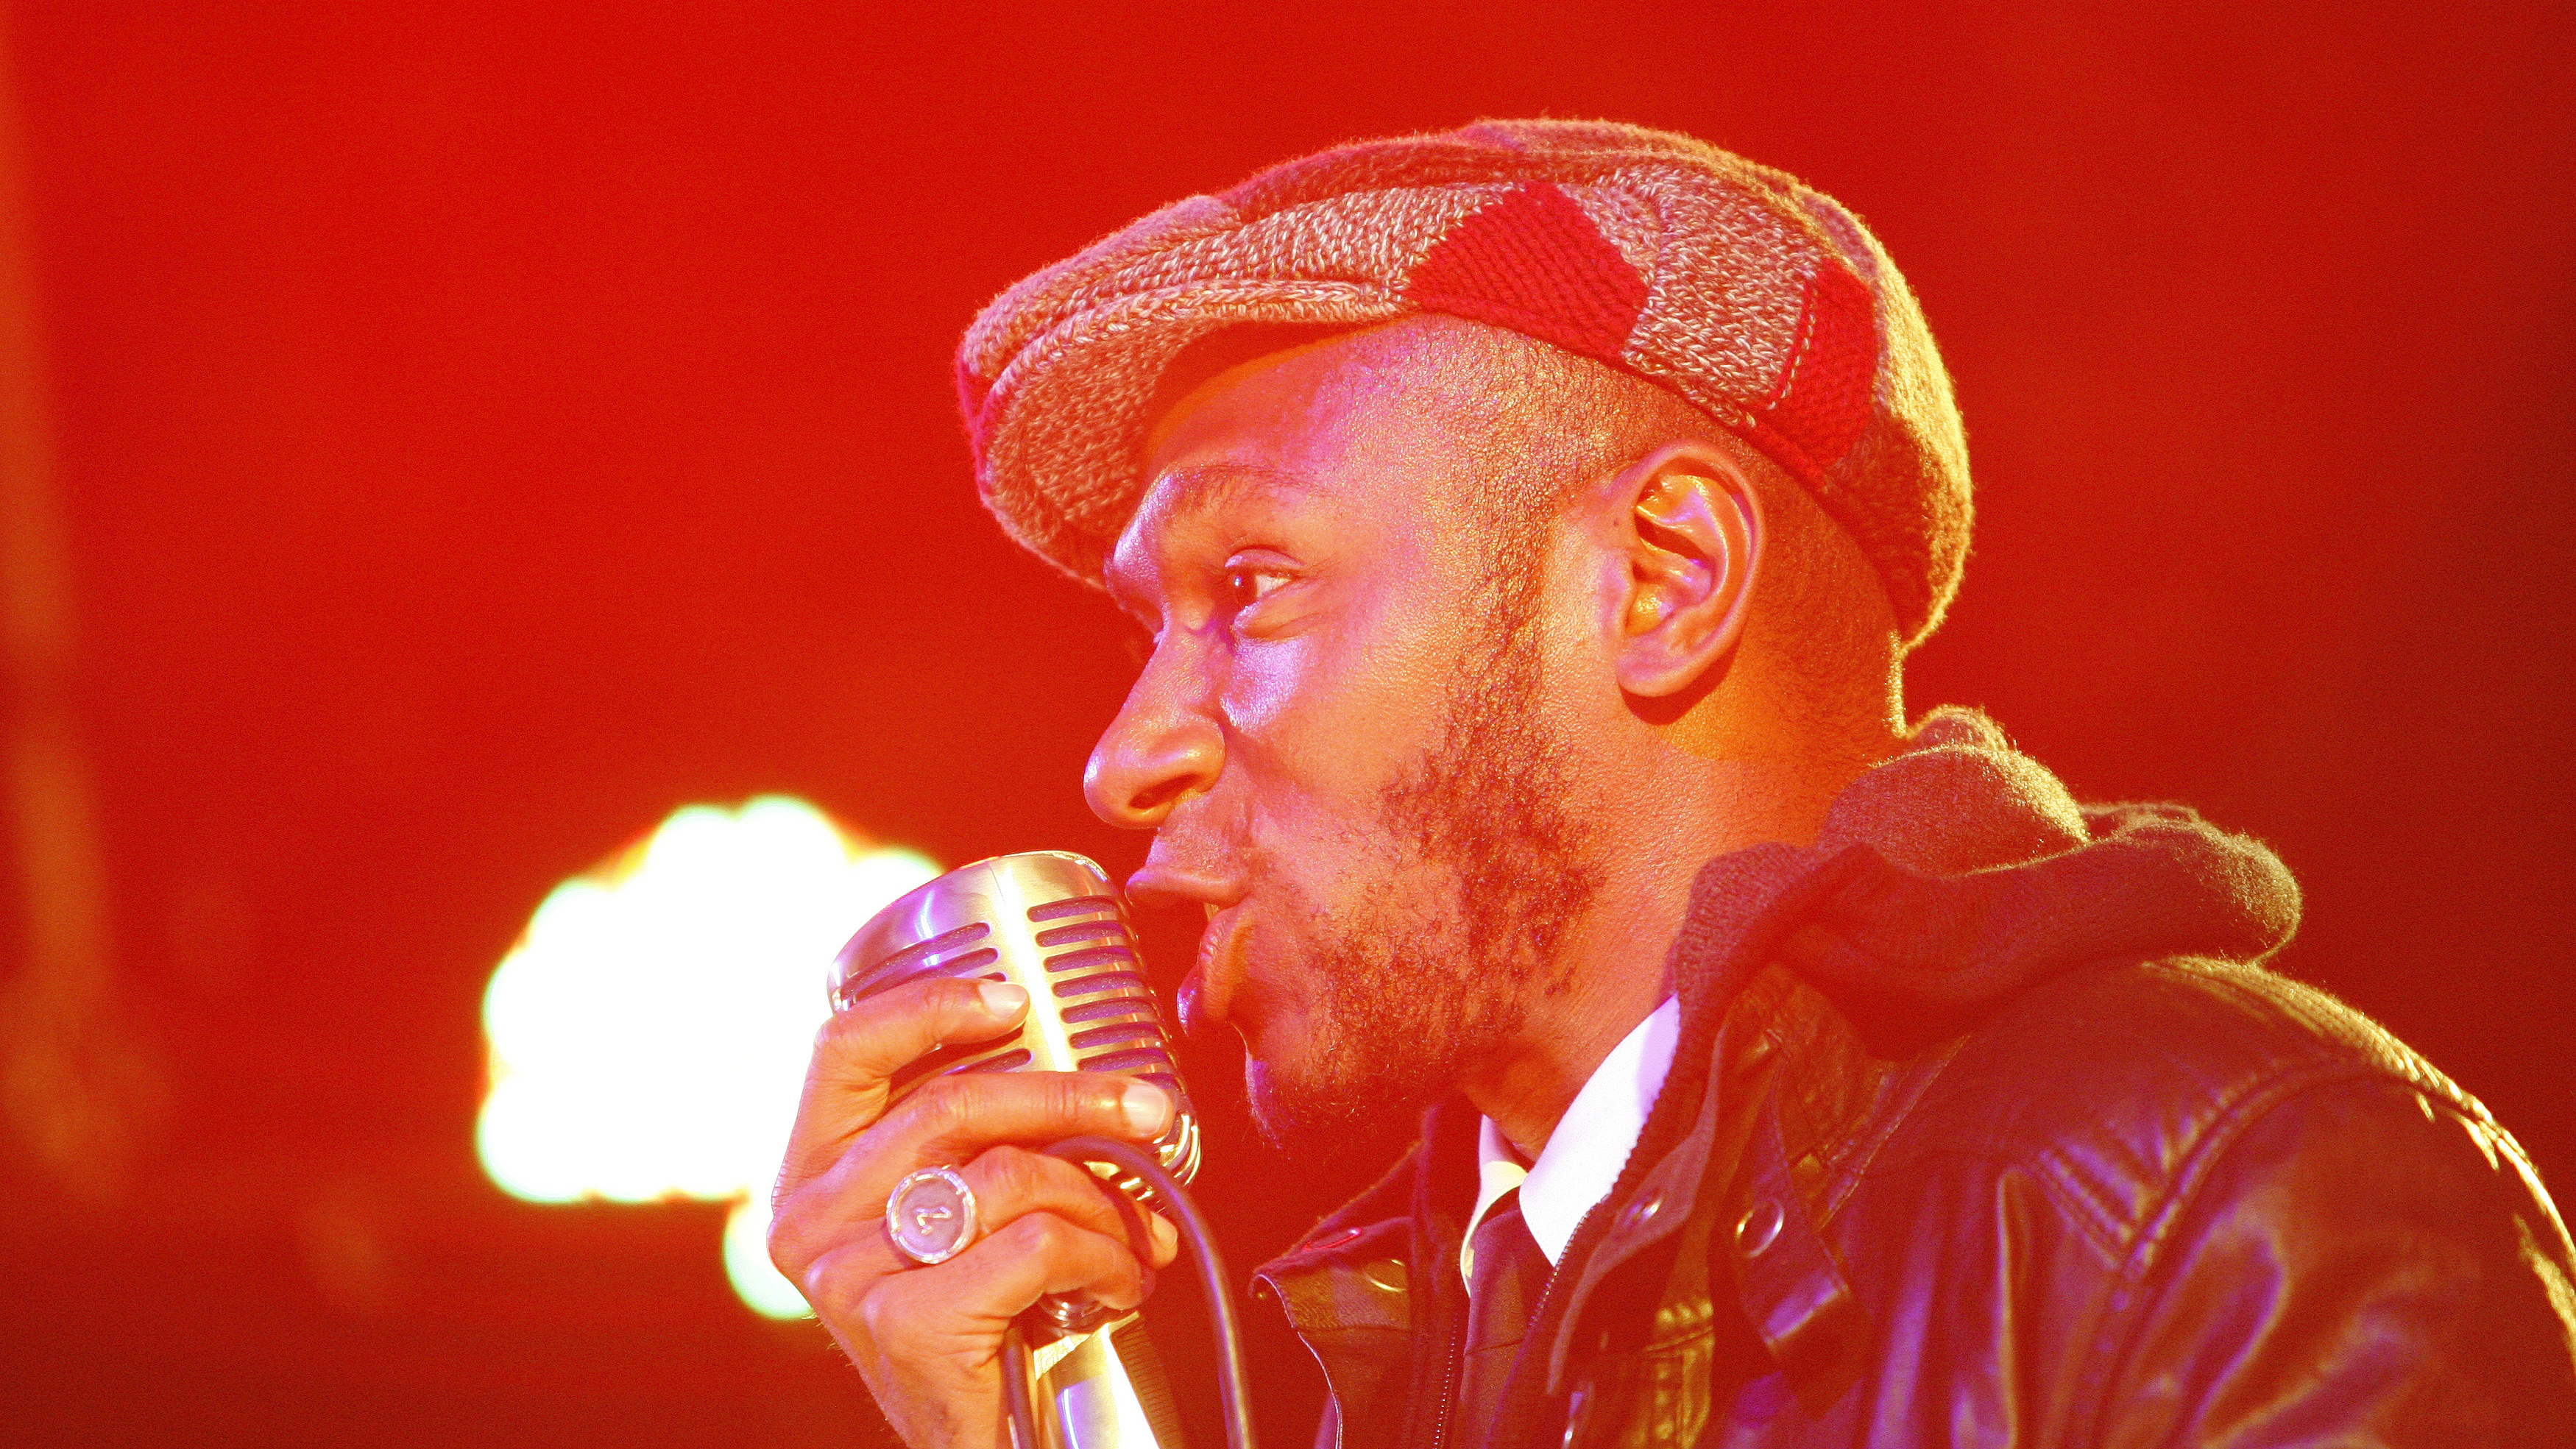 """Hip hop artist Mos Def performs during the """"Discover Music!"""" event at Capitol Studios in Hollywood, California October 28, 2009. Google Inc partnered with Web services LaLa and MySpace's iLike to give music fans an easier way to find, sample and buy songs on the Internet.   REUTERS/Mario Anzuoni   (UNITED STATES ENTERTAINMENT) - RTXQ4BZ"""